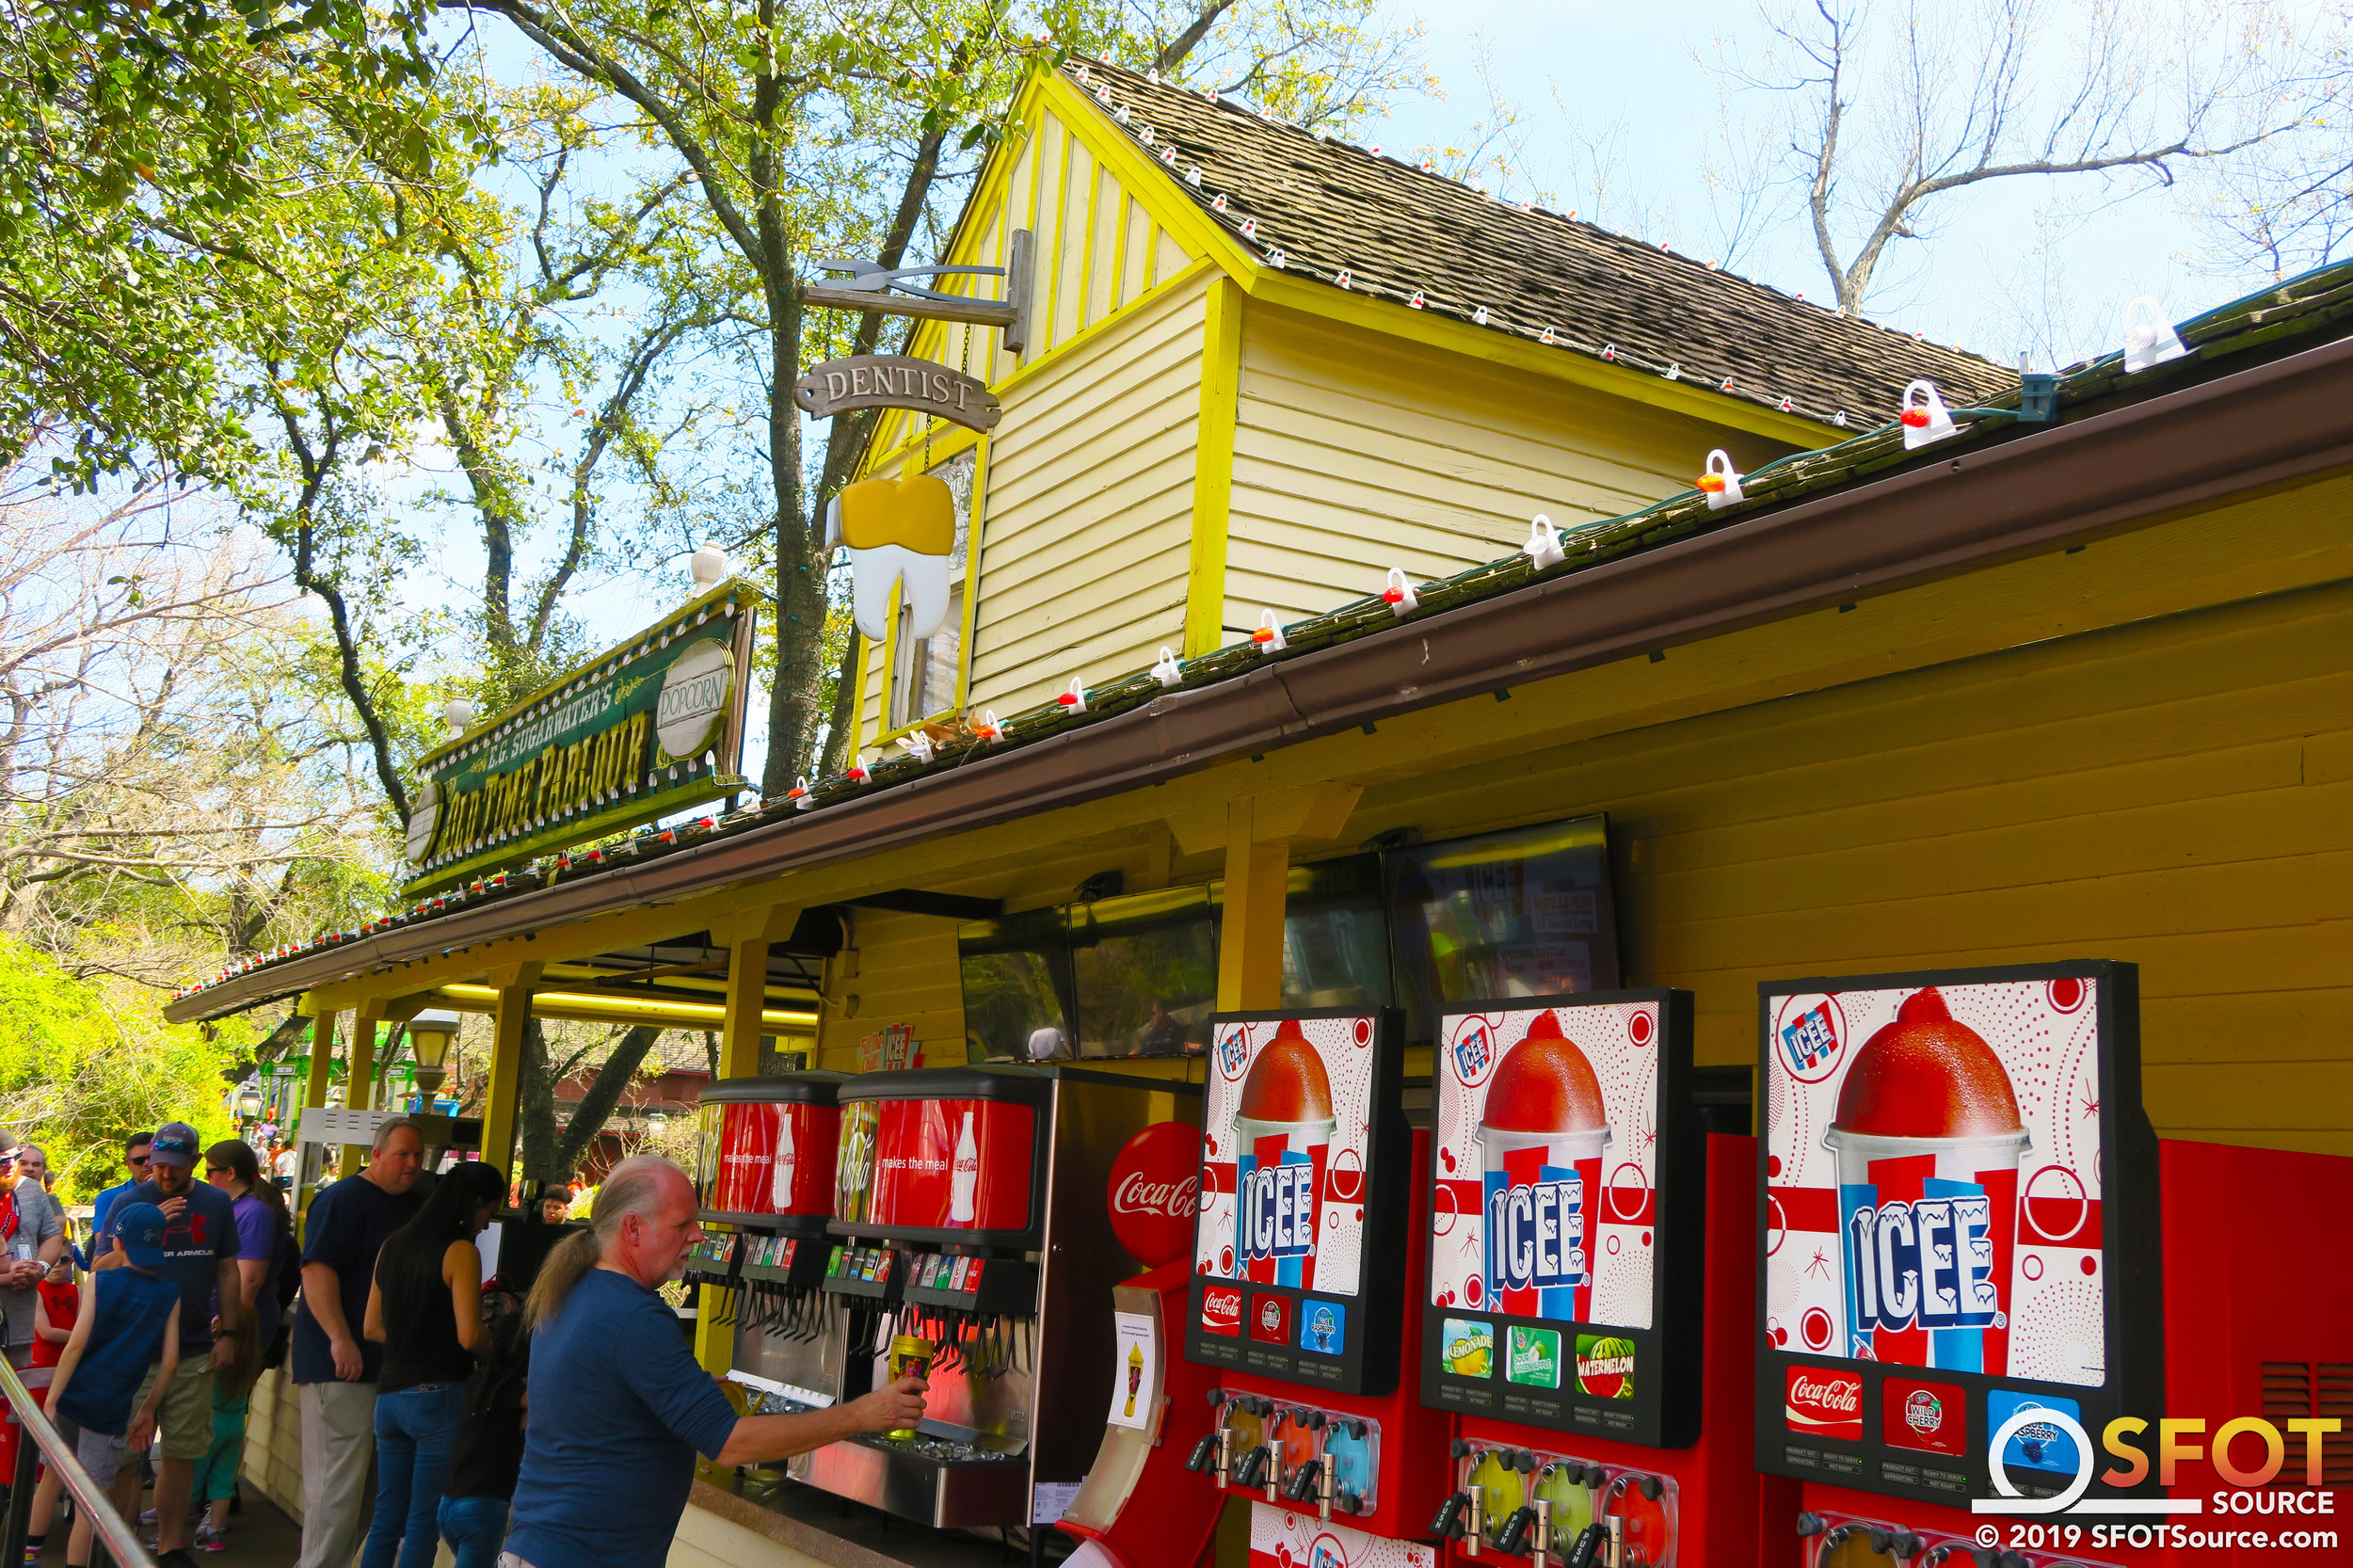 E.G. Sugarwater's allows guests to refill their own season drink bottles.